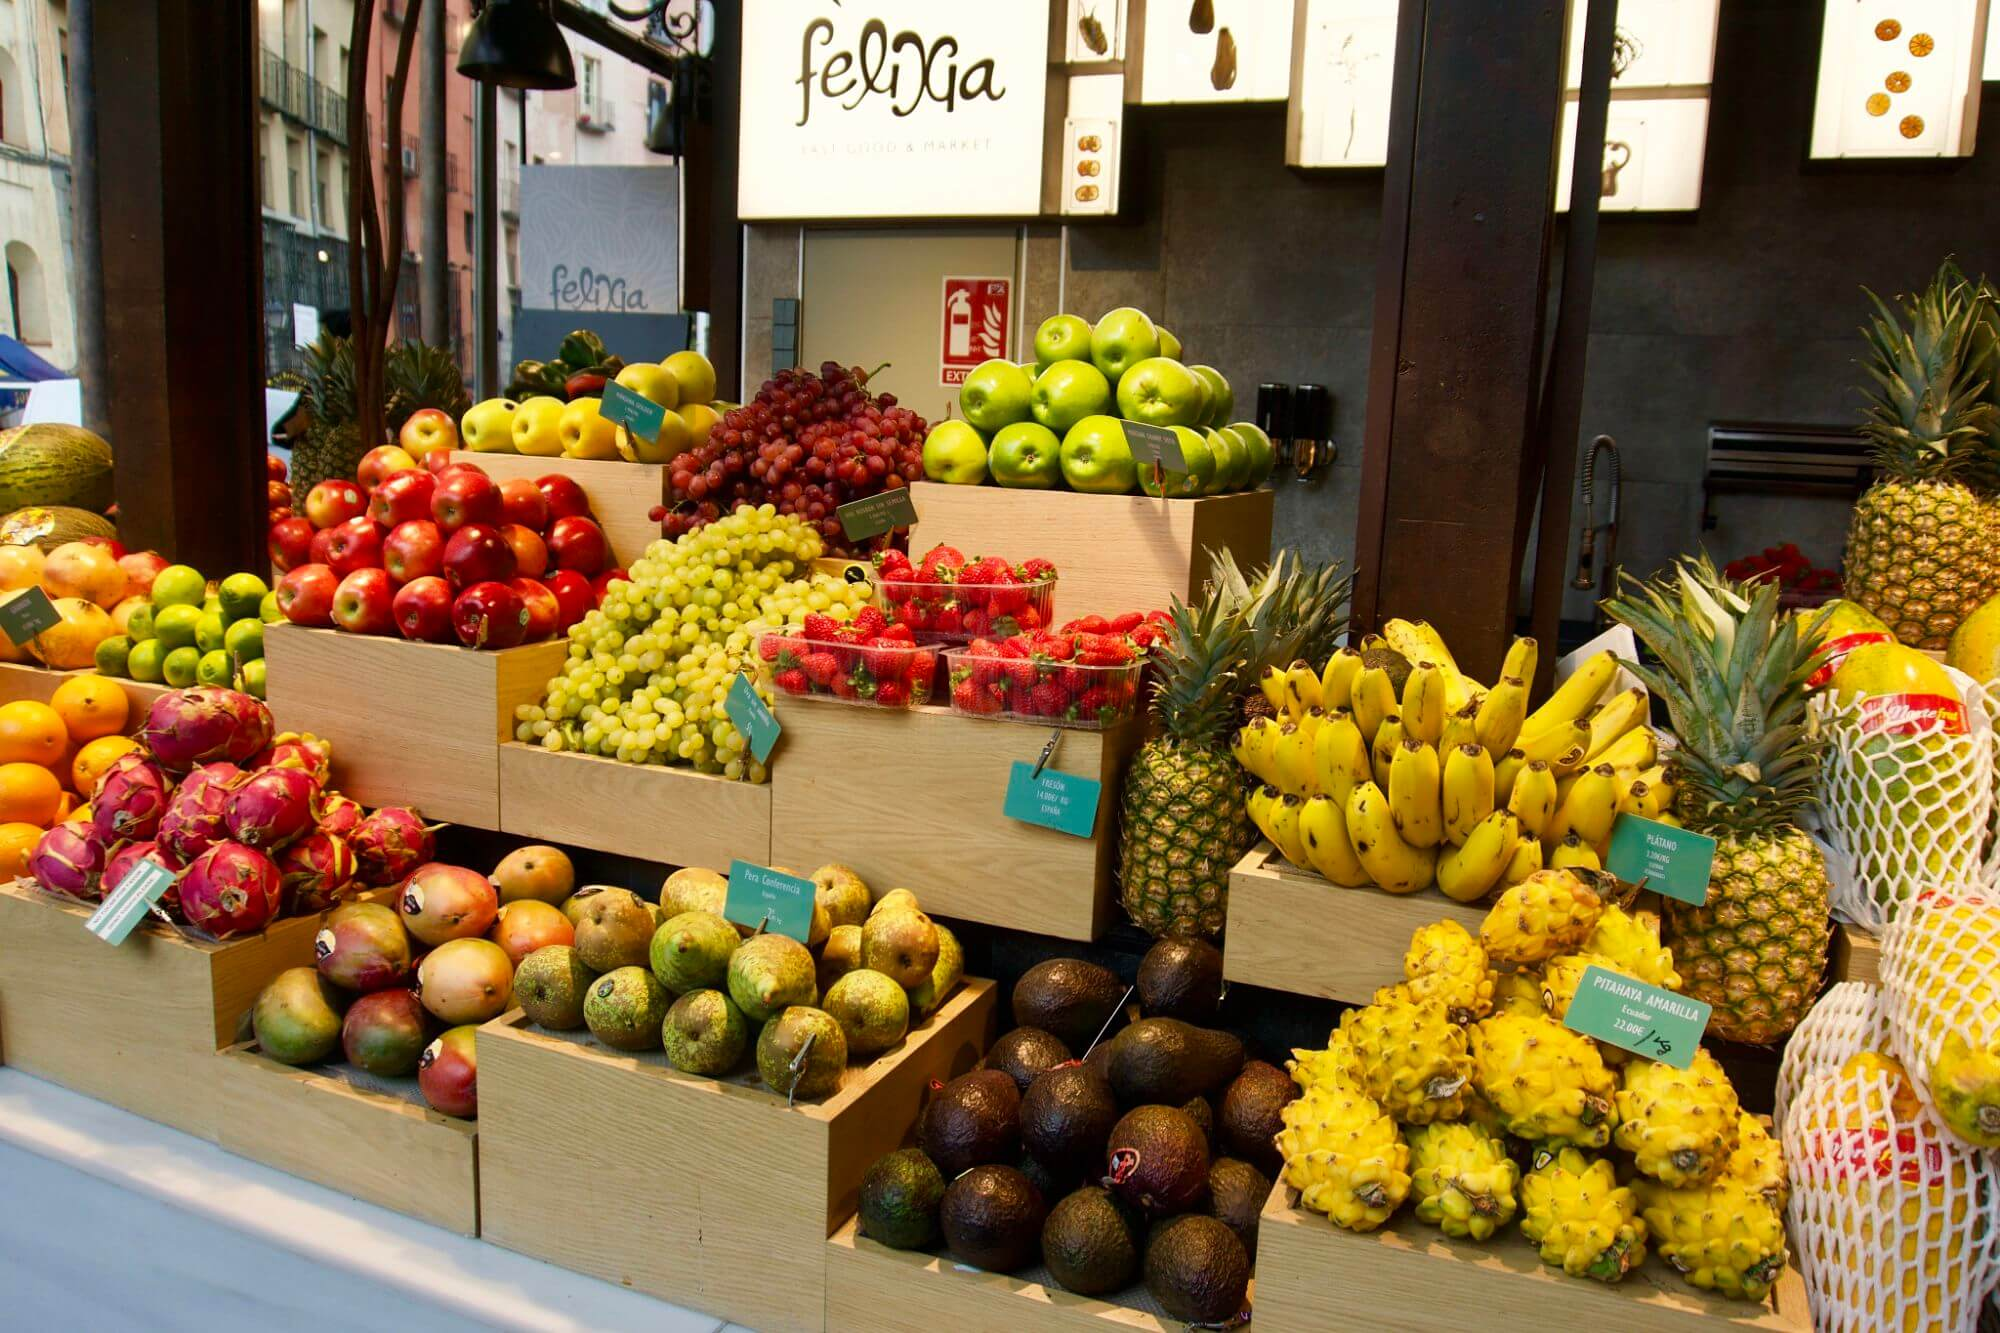 Fruit vendor in Mercado de San Miguel in Madrid Spain